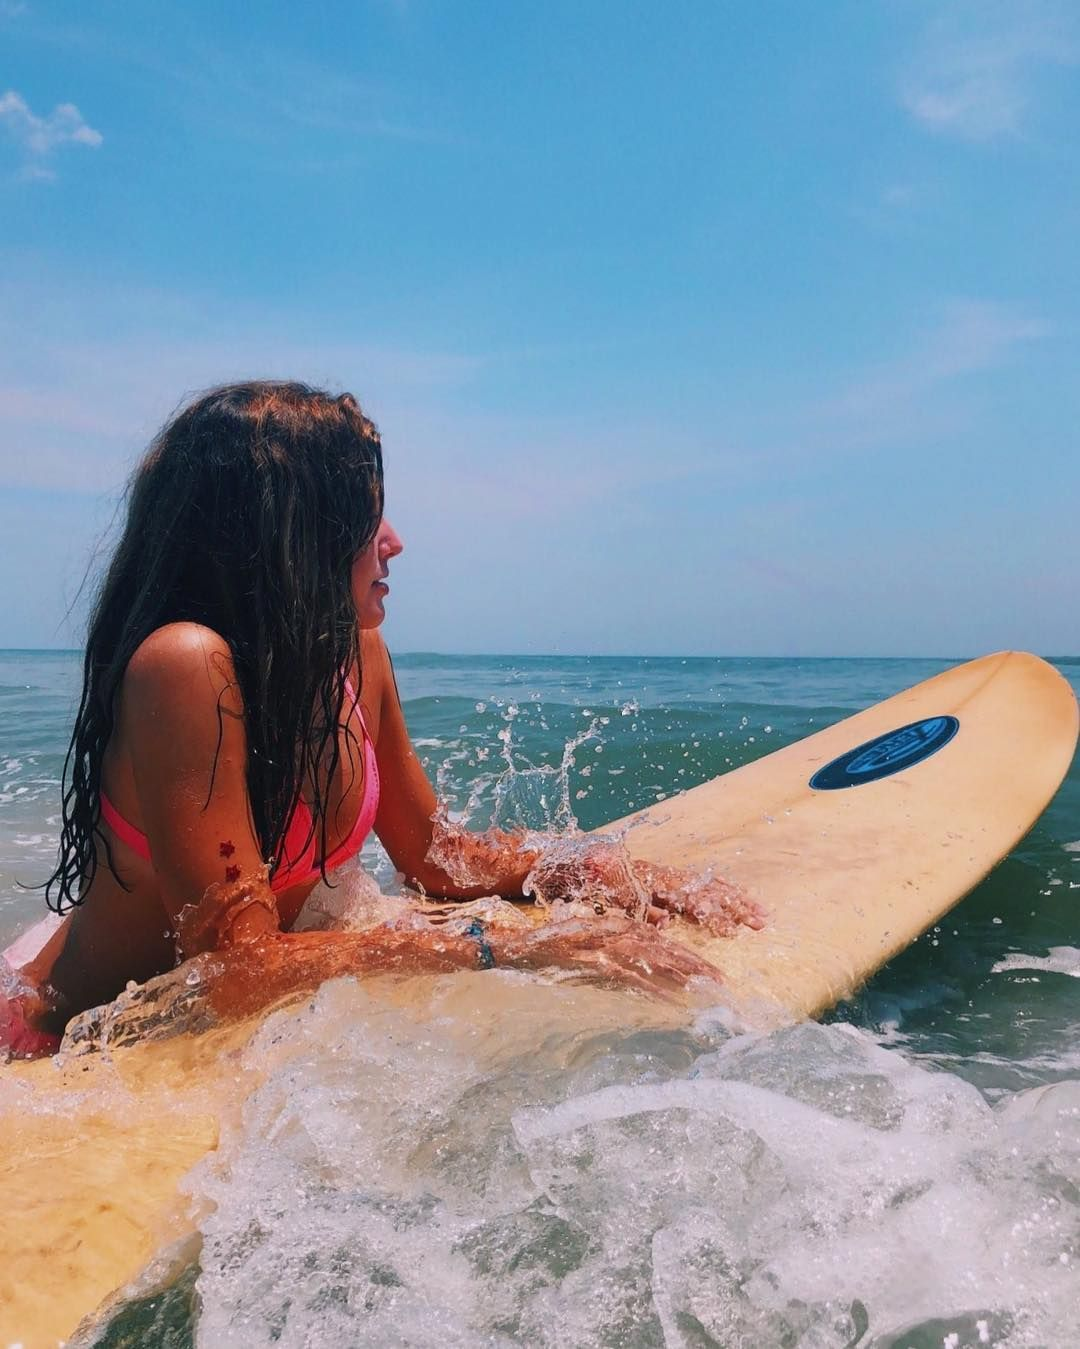 T E E N T H I N G S On Instagram Ridin The Waves Teenthings Summer Photos Summer Pictures Surfing